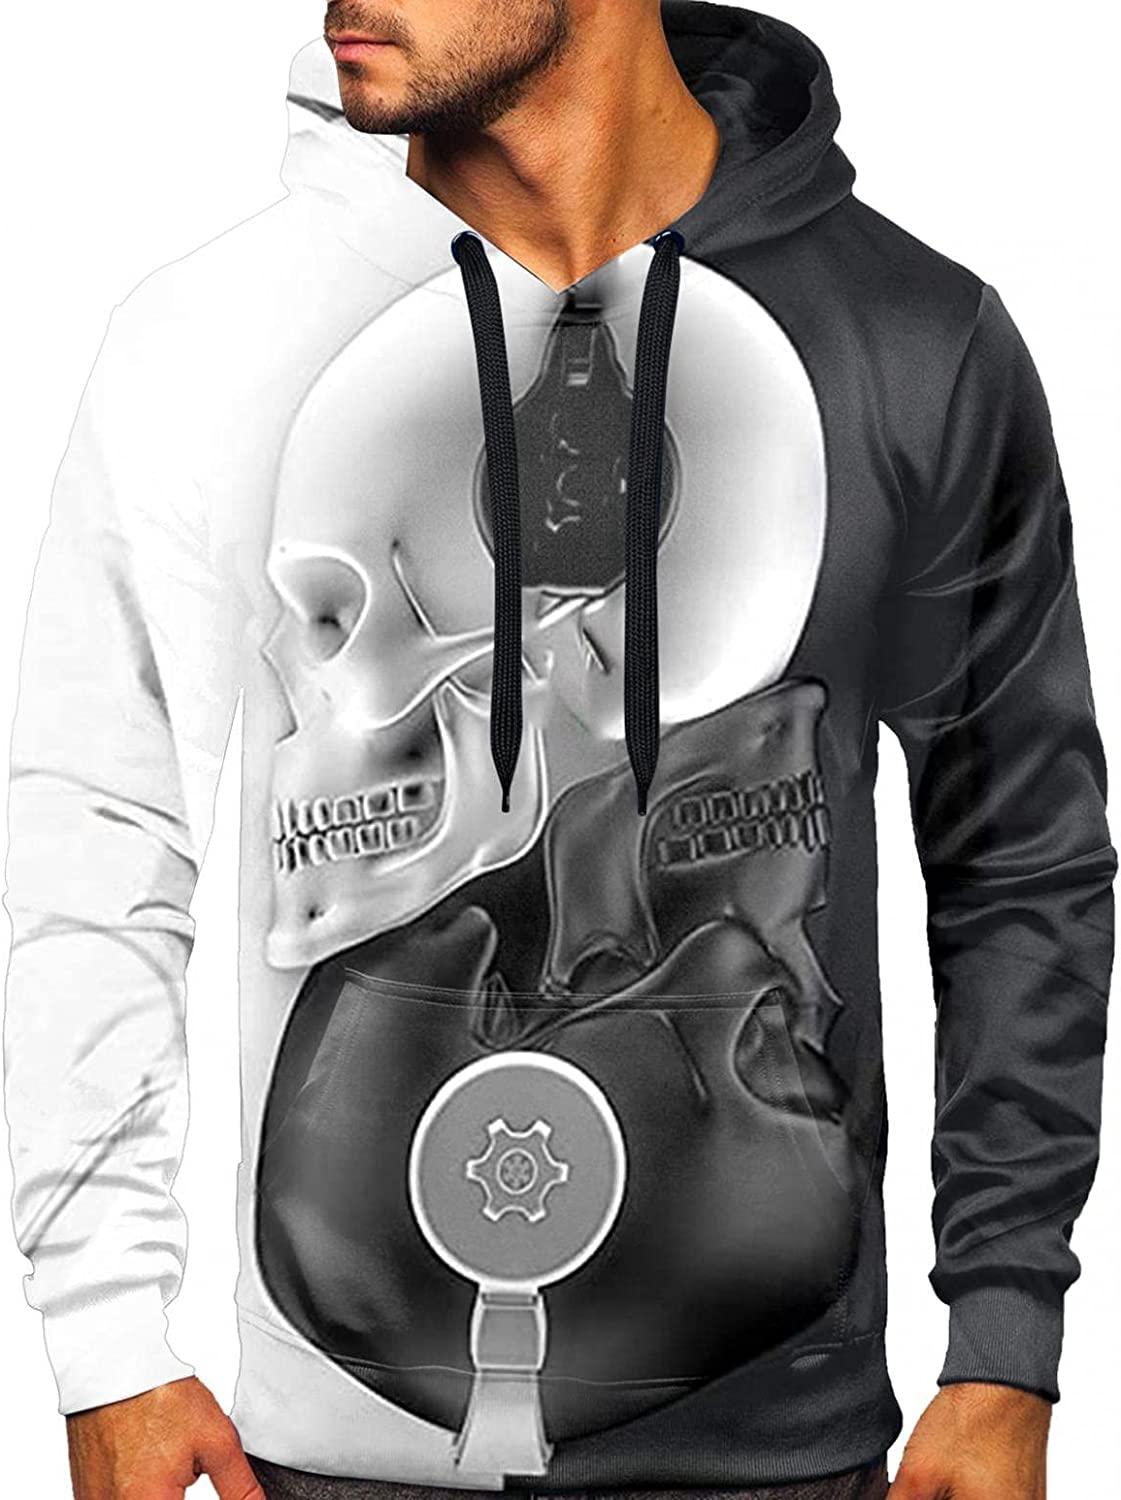 Aayomet Shirts for Men Fashion Halloween Printed Pullover Color Splice Shirts Patchwork Long Sleeve Casual Hoodies